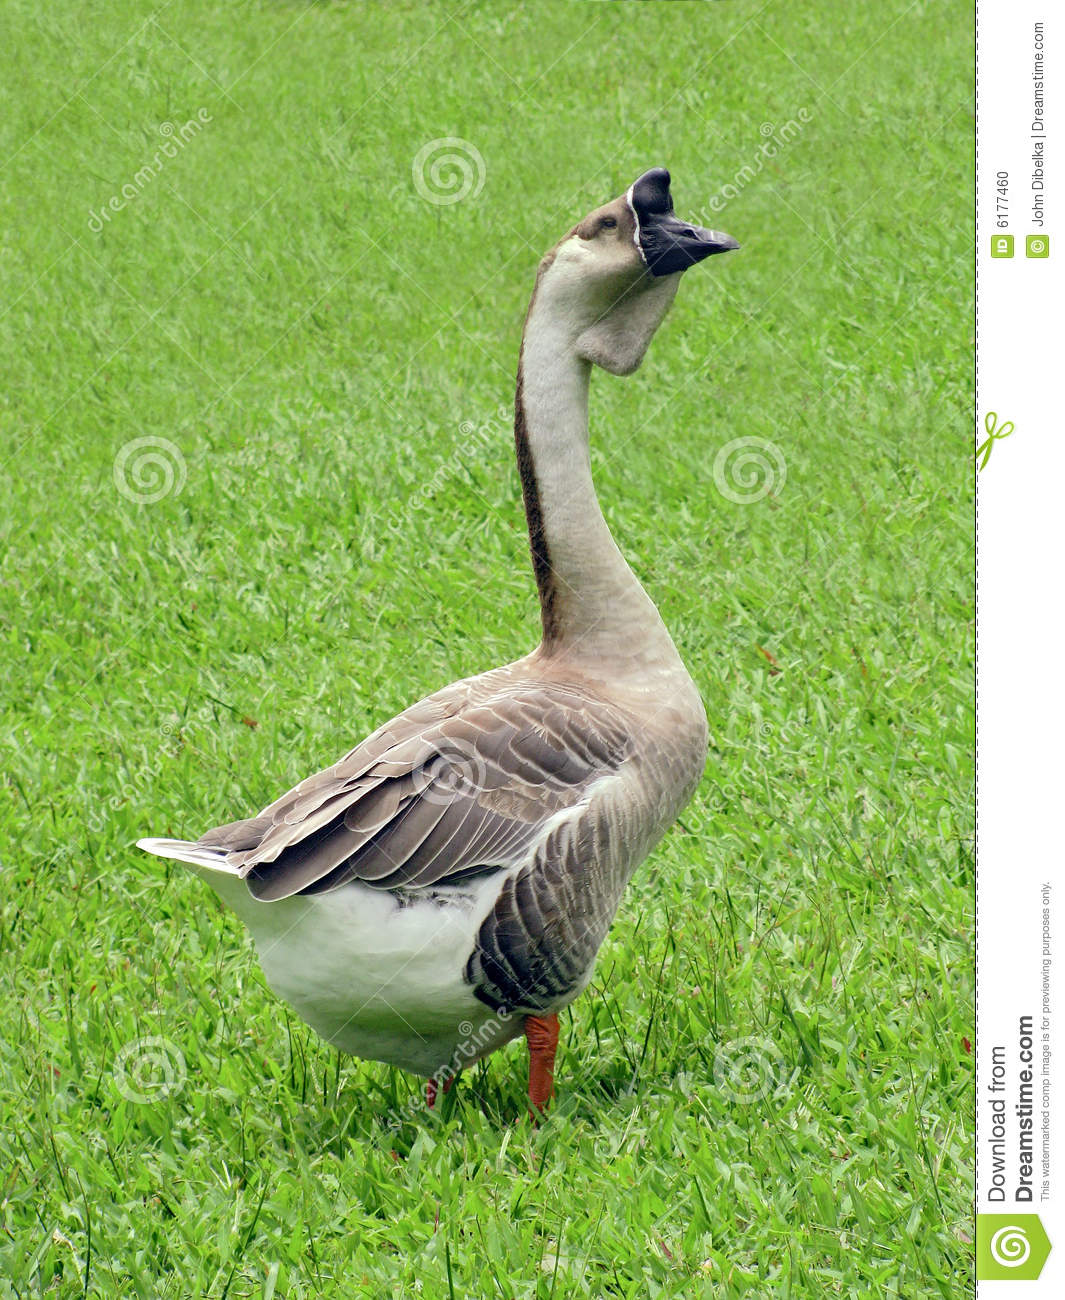 gander male goose standing watch in clipped grass